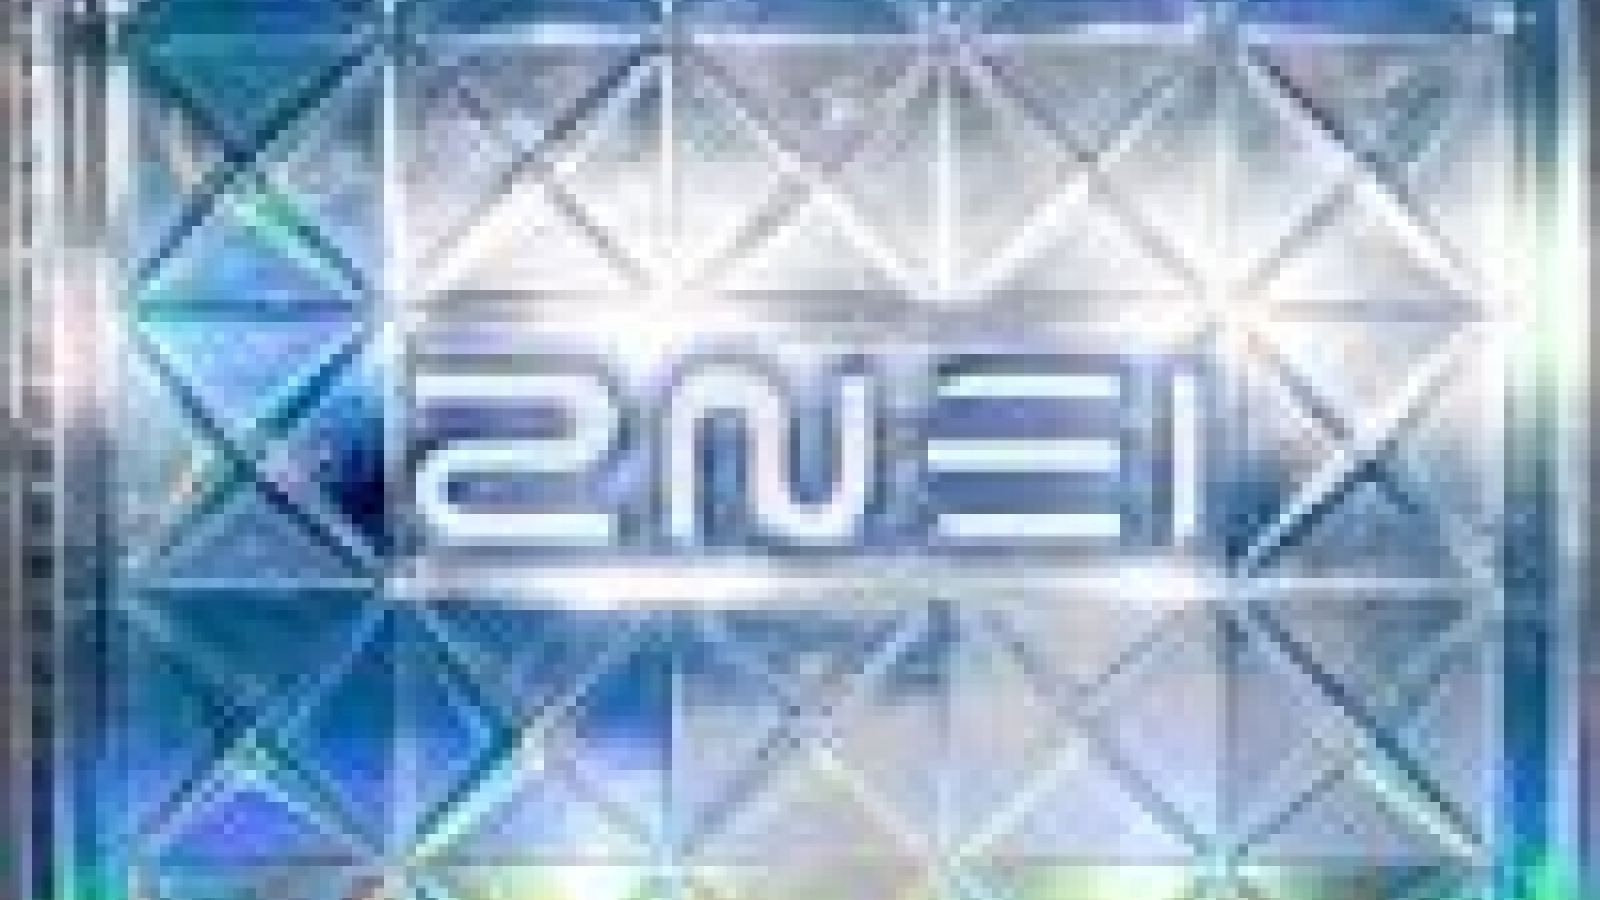 2NE1 plans to release an album and hold a one-man concert this year © Powerhouselive